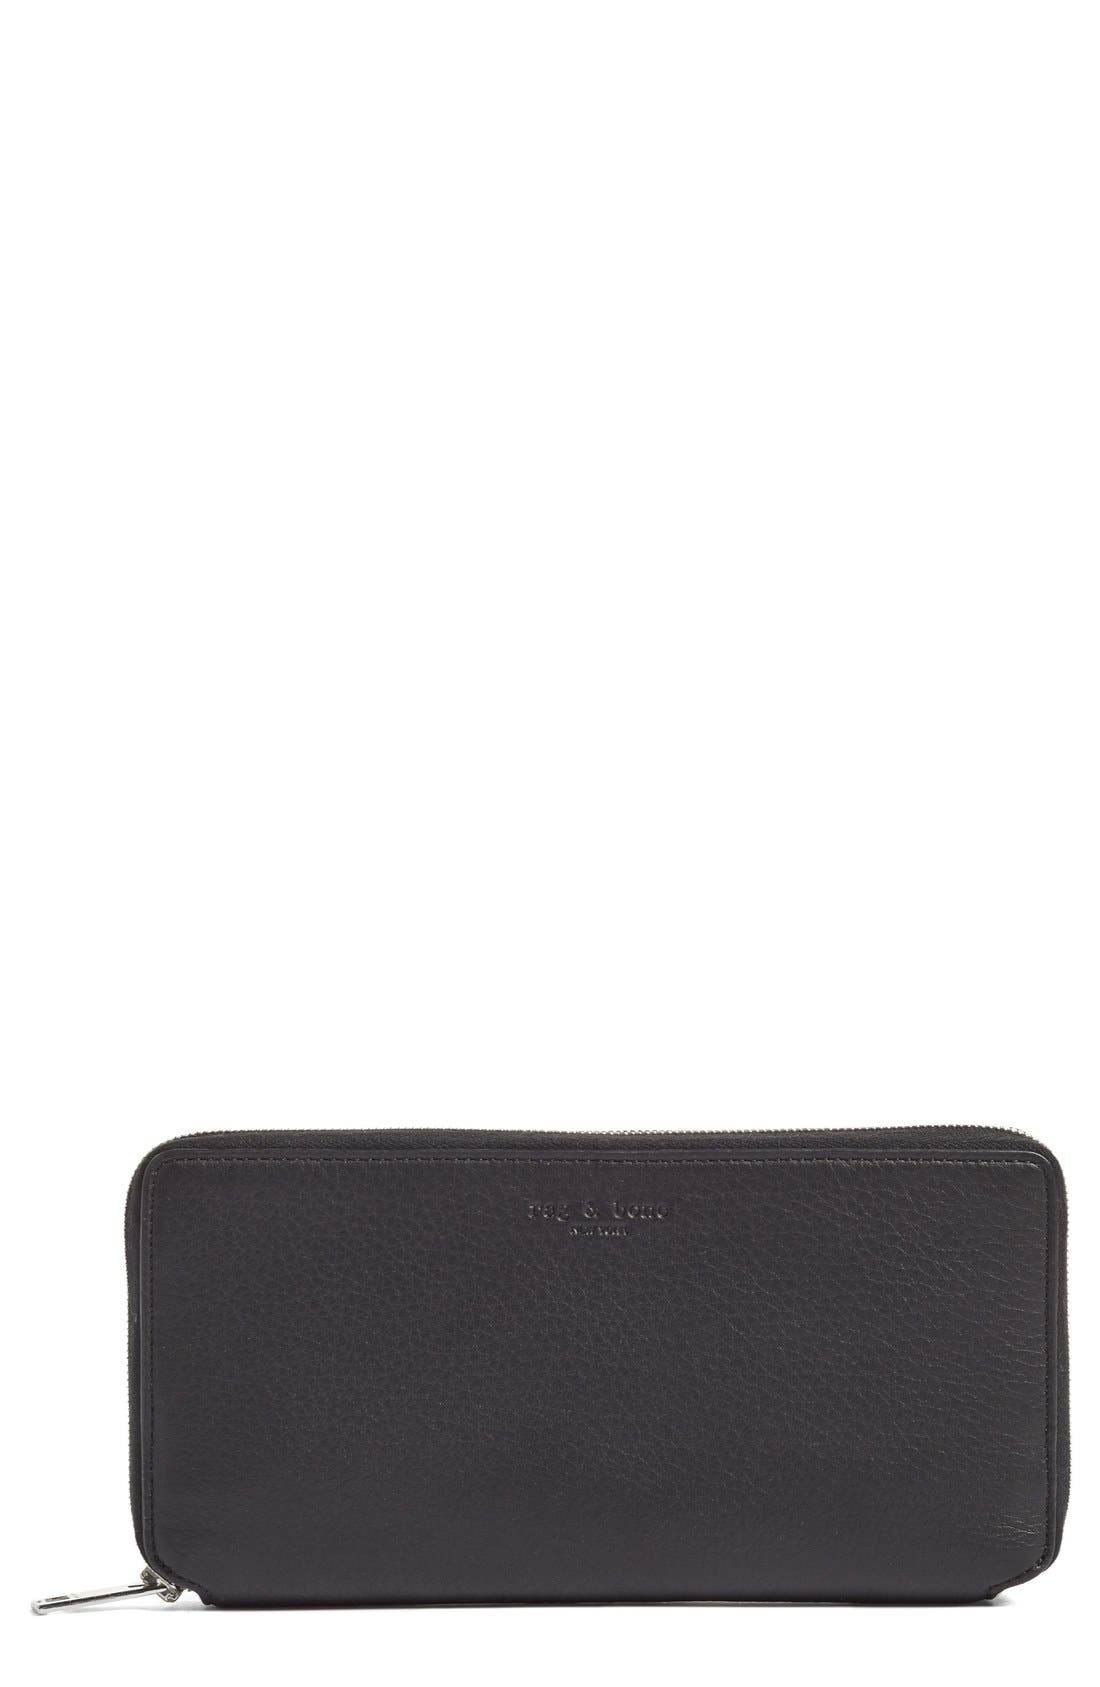 Leather Zip Around Wallet,                             Main thumbnail 1, color,                             BLACK